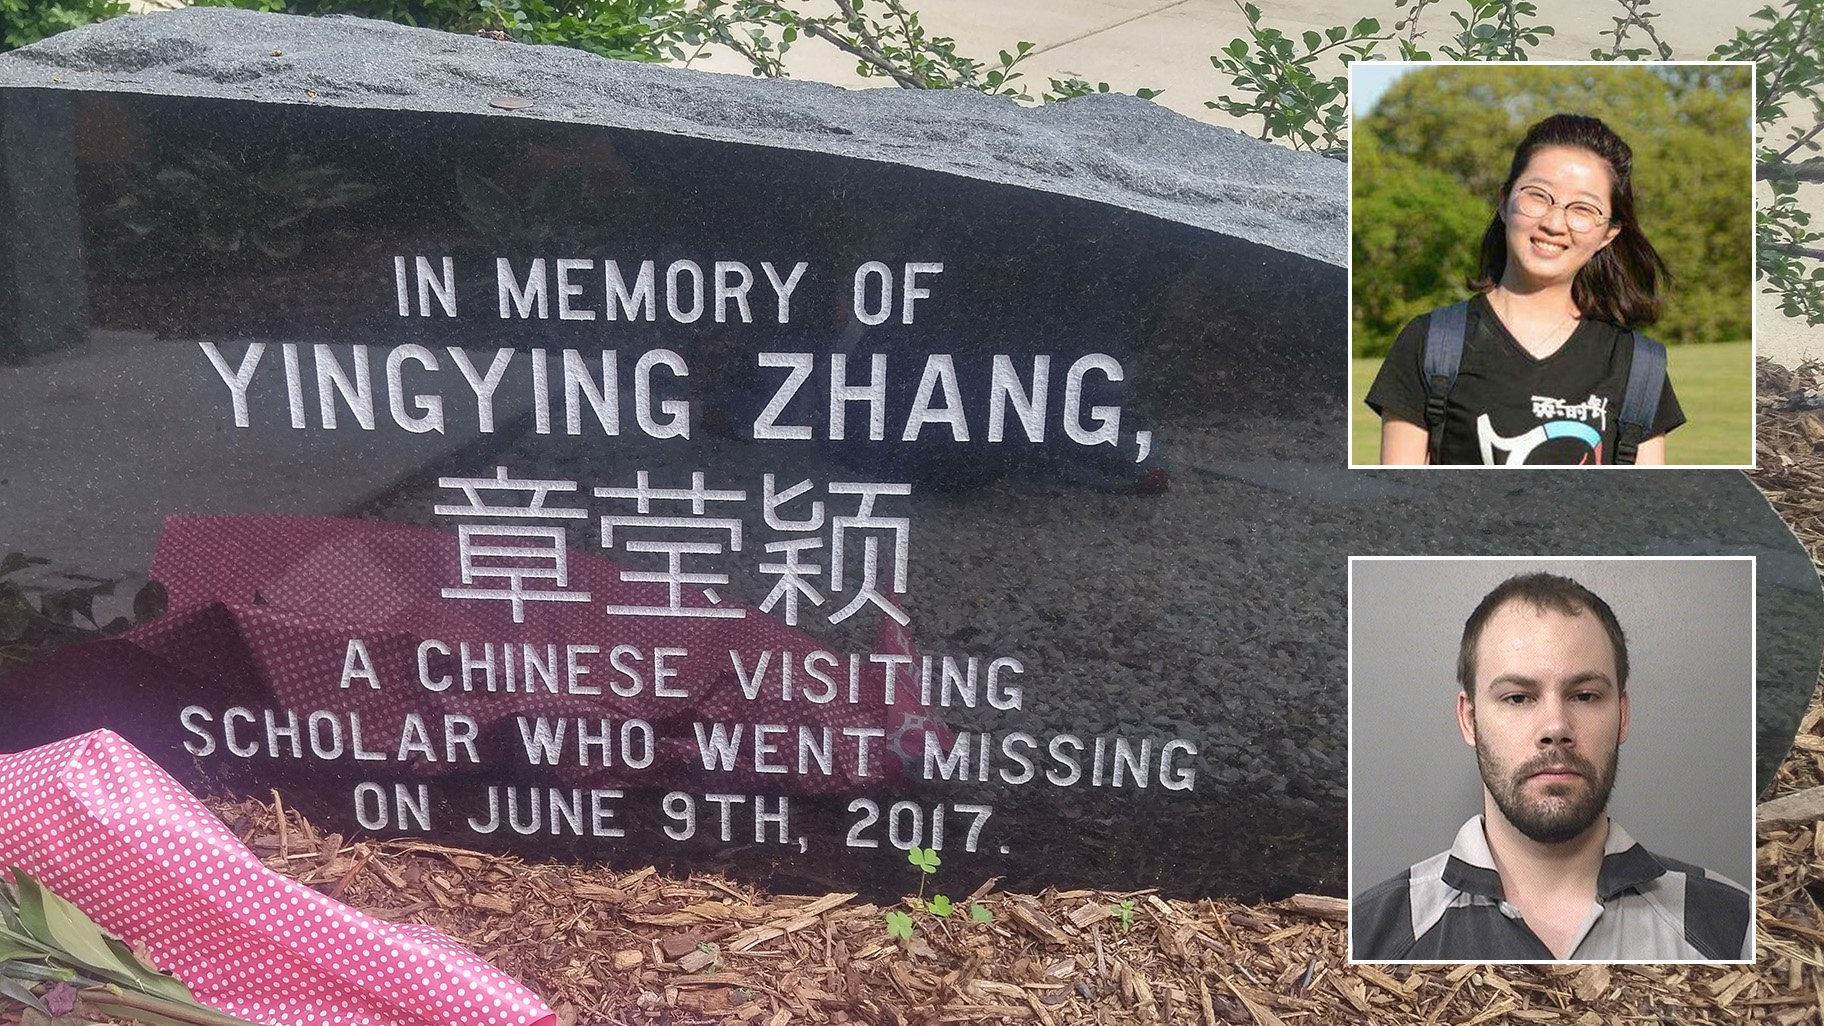 A memorial stone engraved with Yingying Zhang's name in both English and Chinese on the campus of the University of Illinois at Urbana-Champaign in June 2019, two years after her disappearance. (Photo by Mark Van Moer) Inset, top: Yingying Zhang (Courtesy University of Illinois Police Department). Bottom: Brendt Christensen (Courtesy Macon County Sheriff's Department).